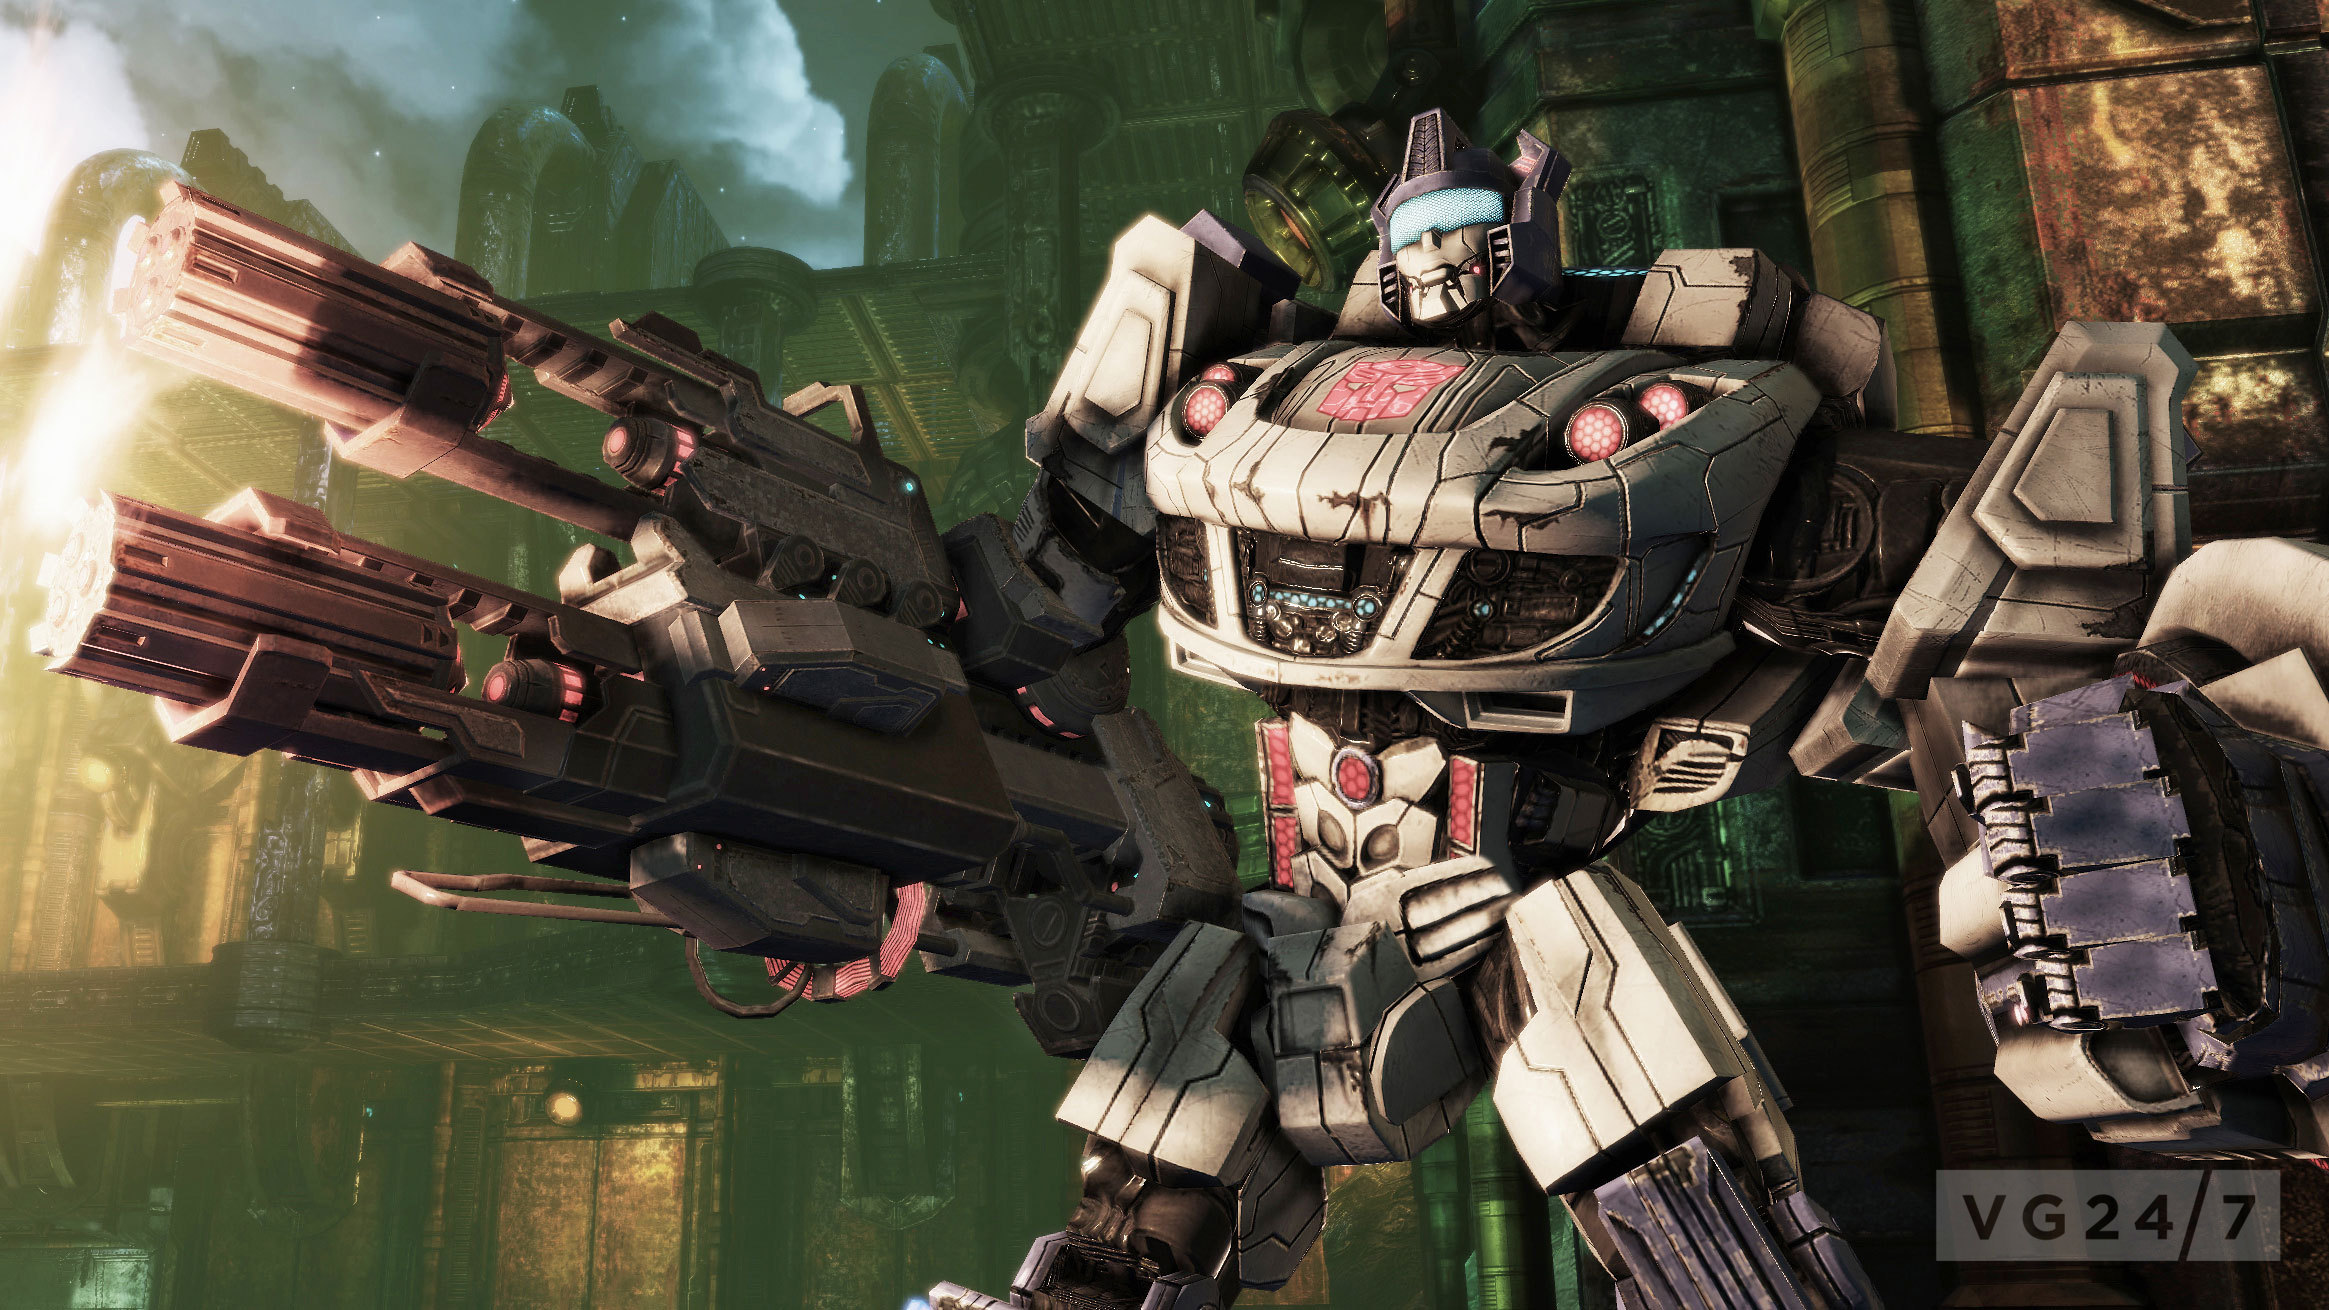 transformers fall of cybertron launch screens show multiplayer robotic carnage vg247. Black Bedroom Furniture Sets. Home Design Ideas